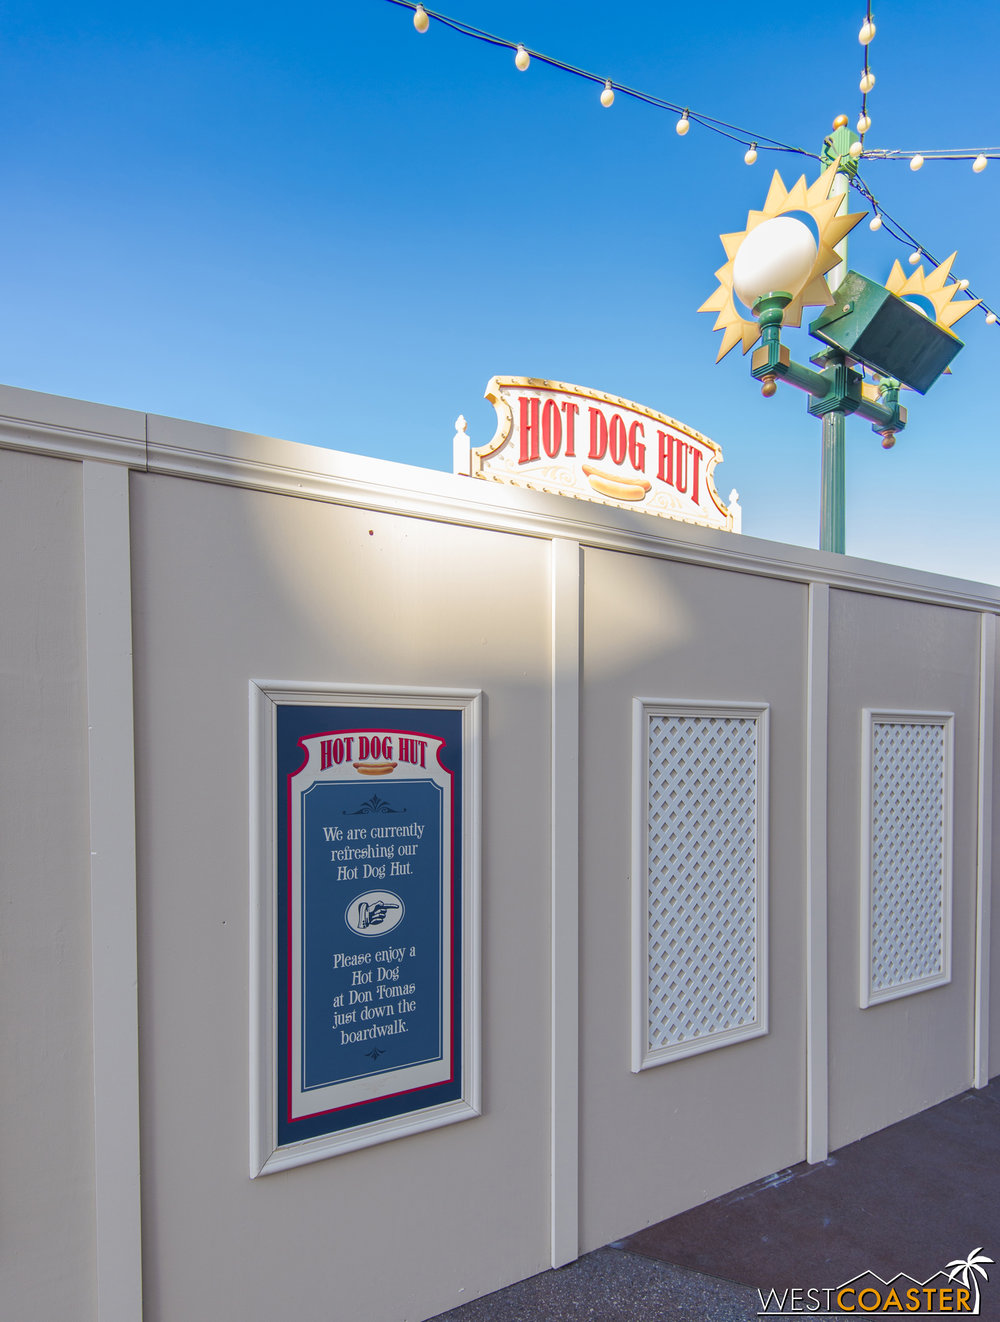 Over in Disney California Adventure, if you must have a hot dog on Paradise Pier, you're out of luck.